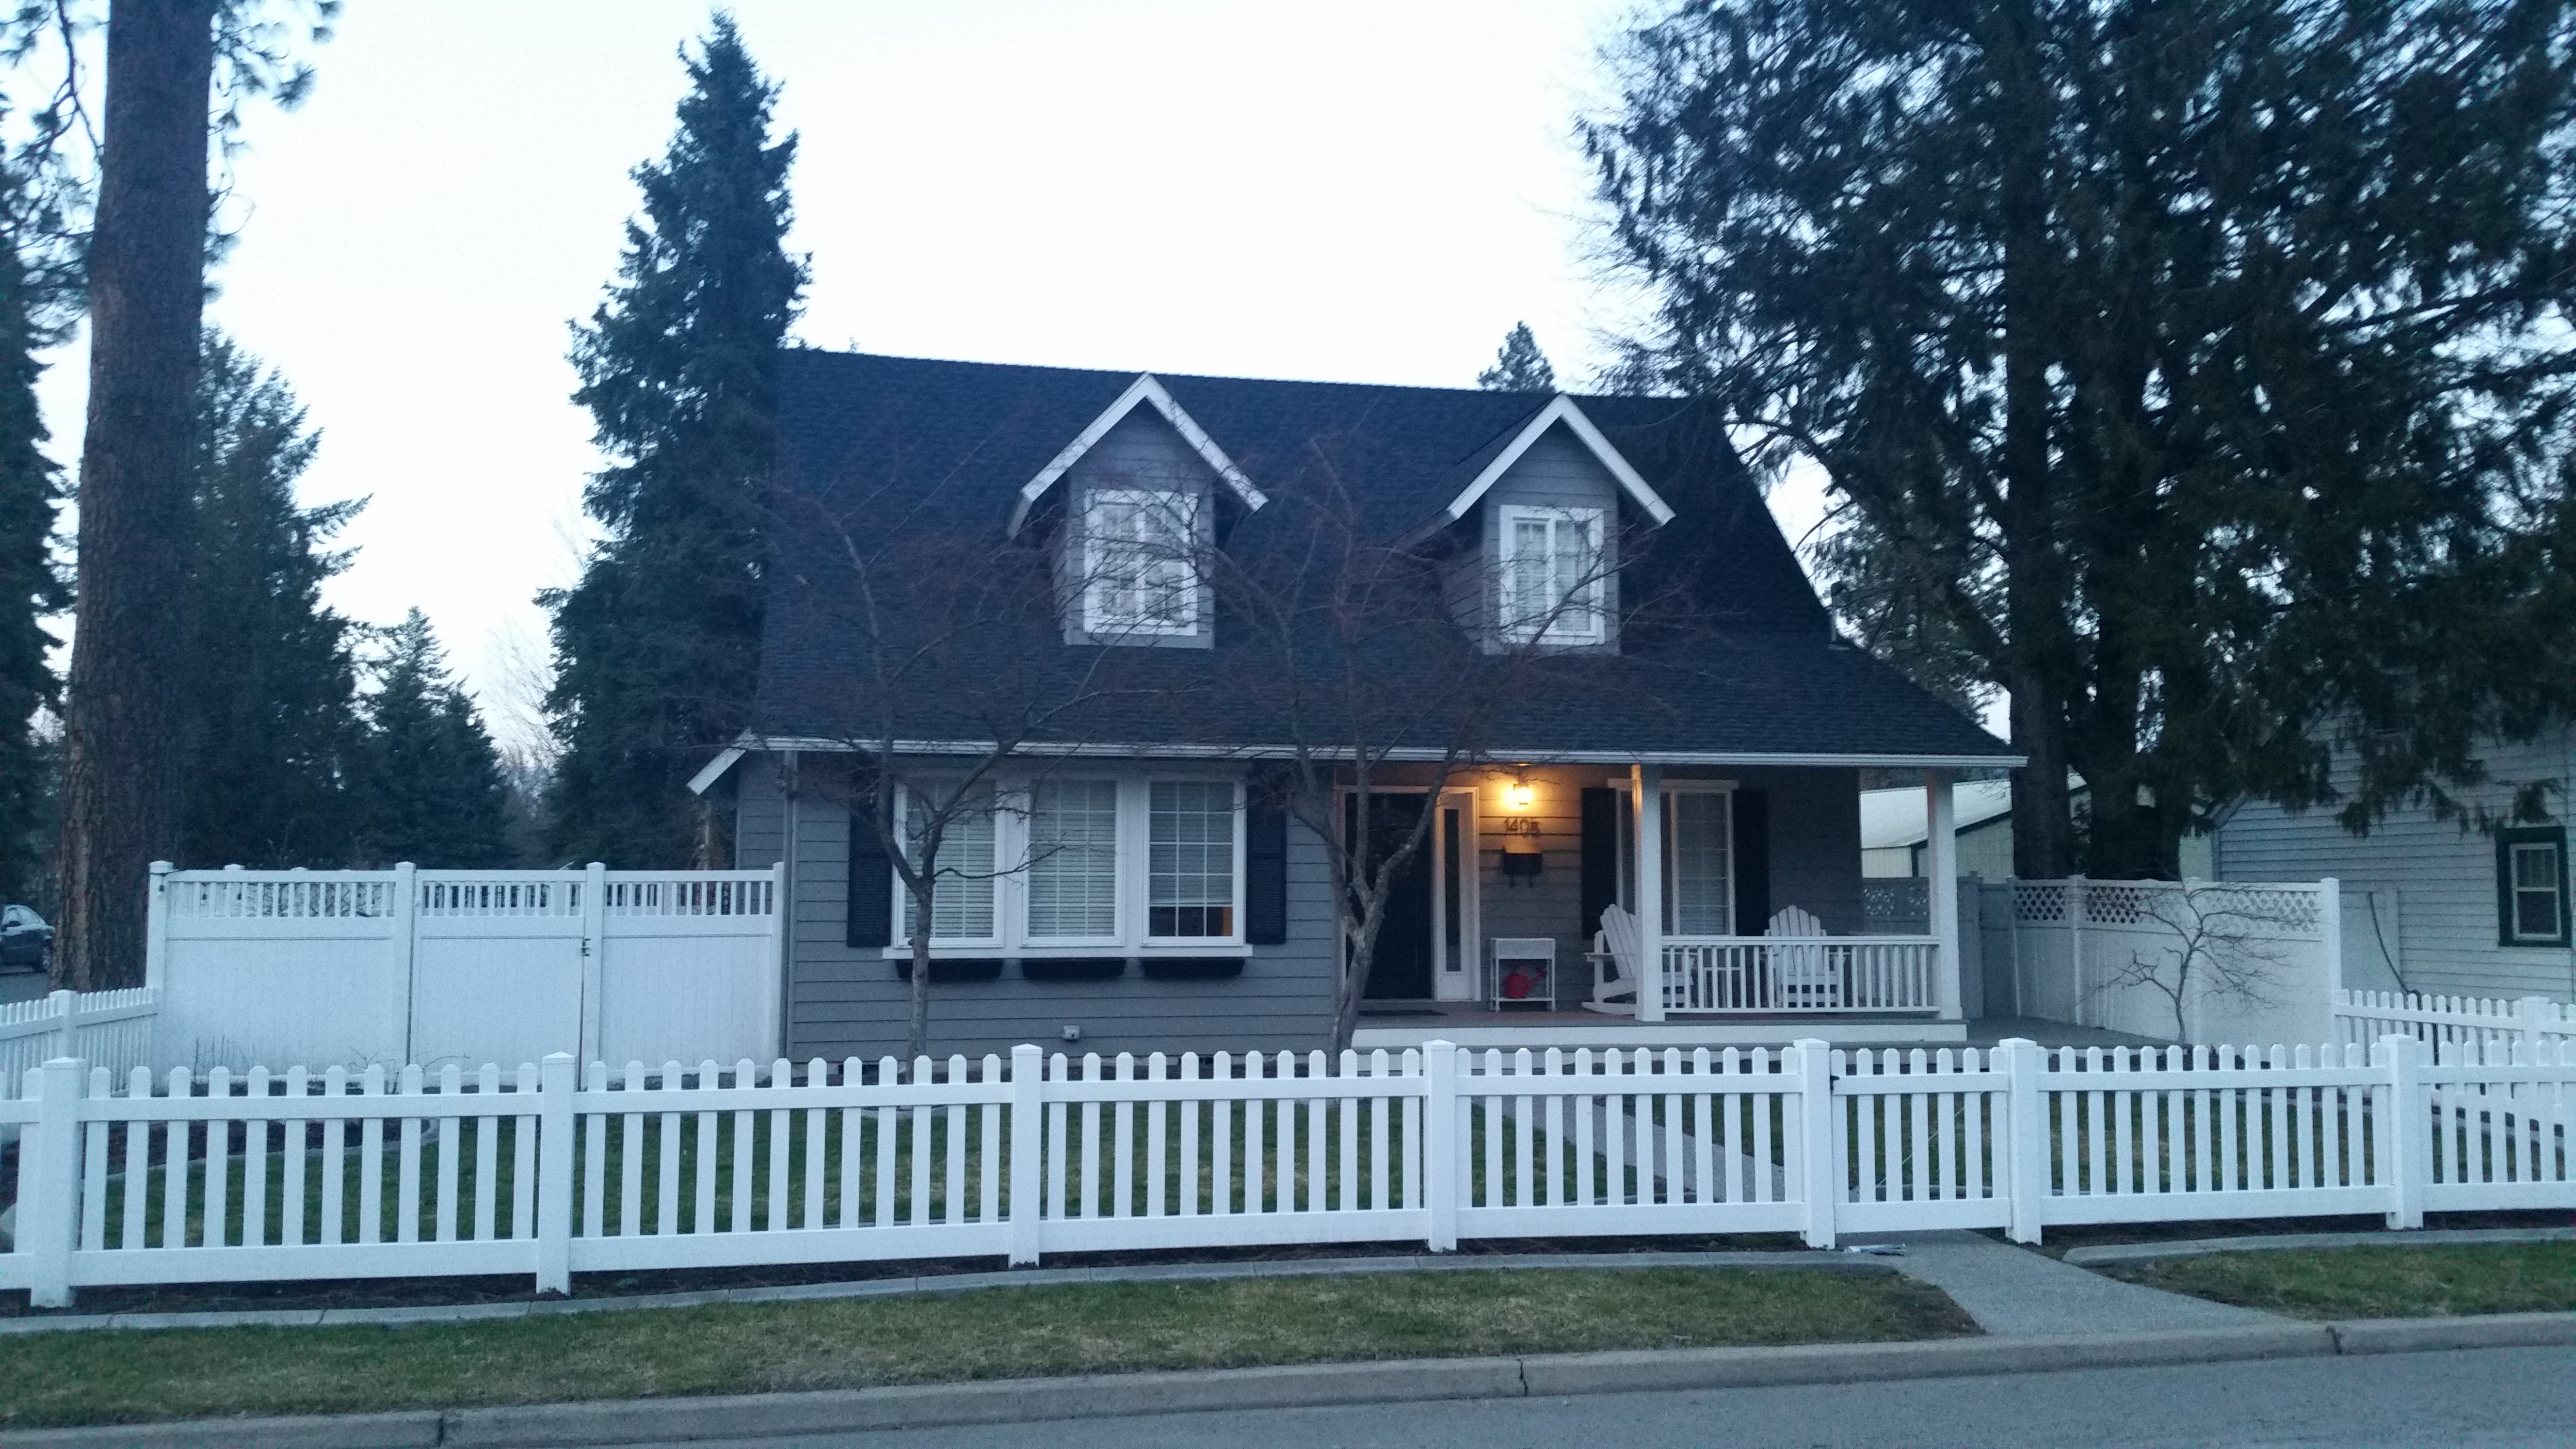 cda ironman homes for rent rent homes for coeur d alene ironman call letters ah ironhome 20160224 172916